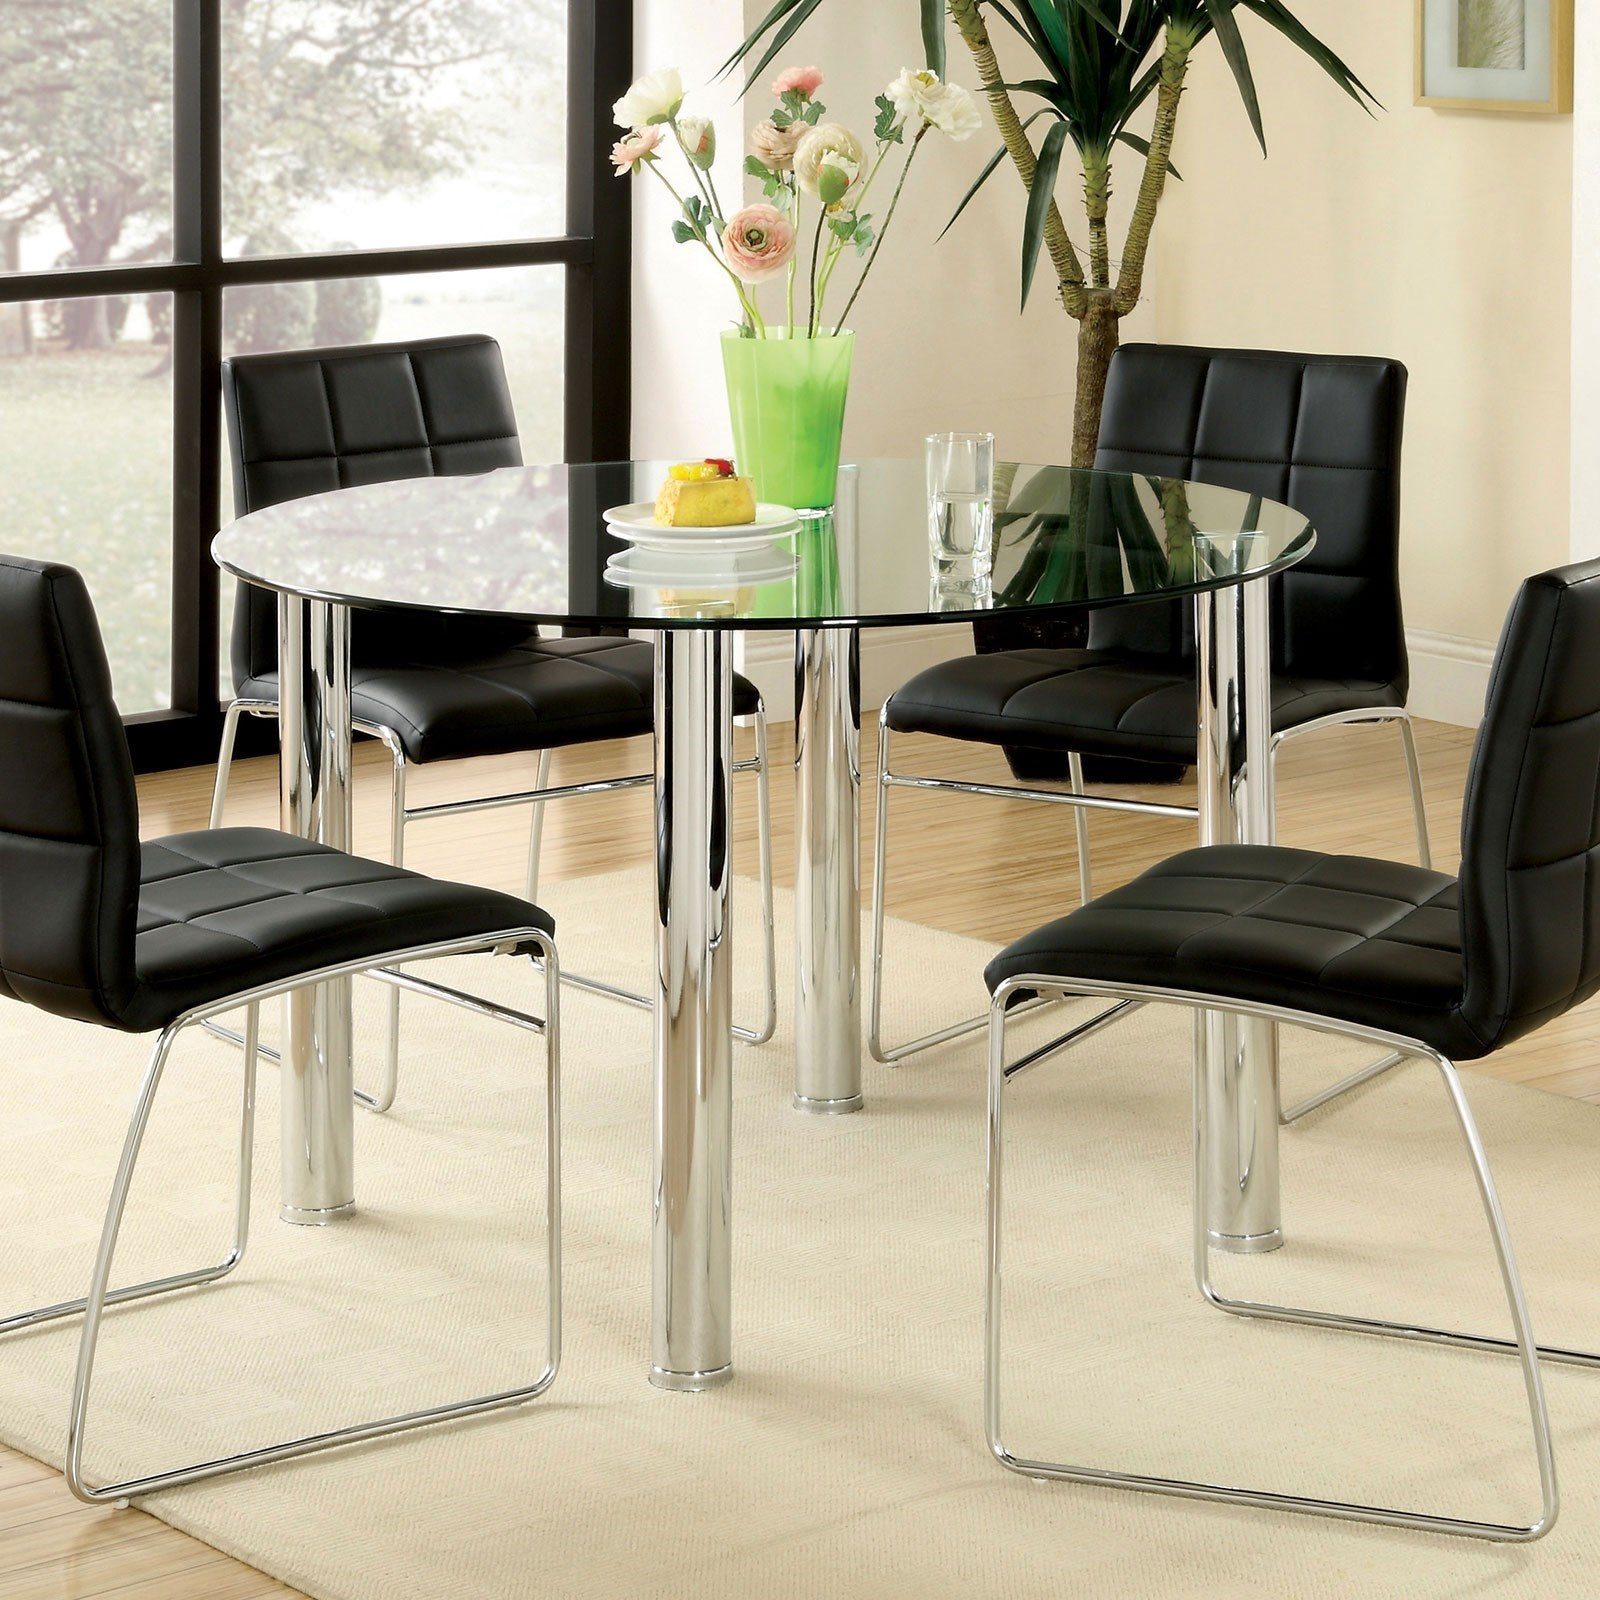 Furniture Of America Kona Contemporary Glass Top Round Dining Table Dream Home Interiors Dining Tables